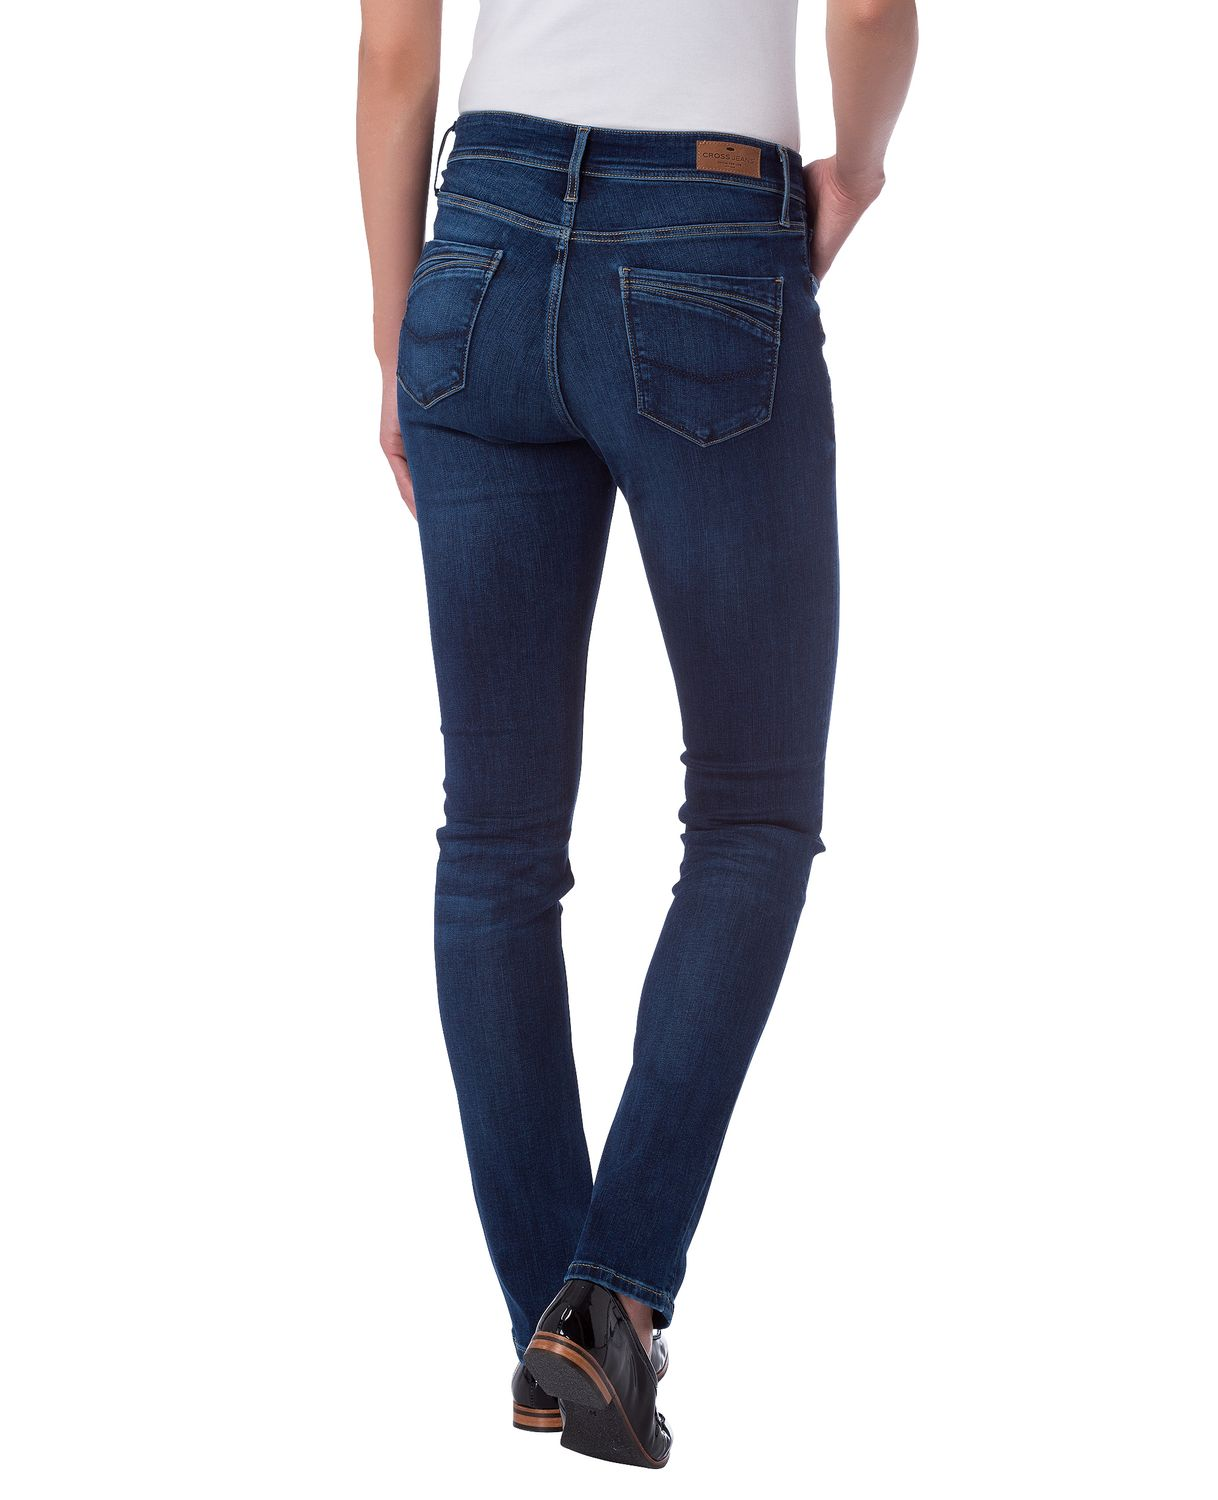 cross-jeans-damen-jeans-anya-slim-fit-blau-dark-blue